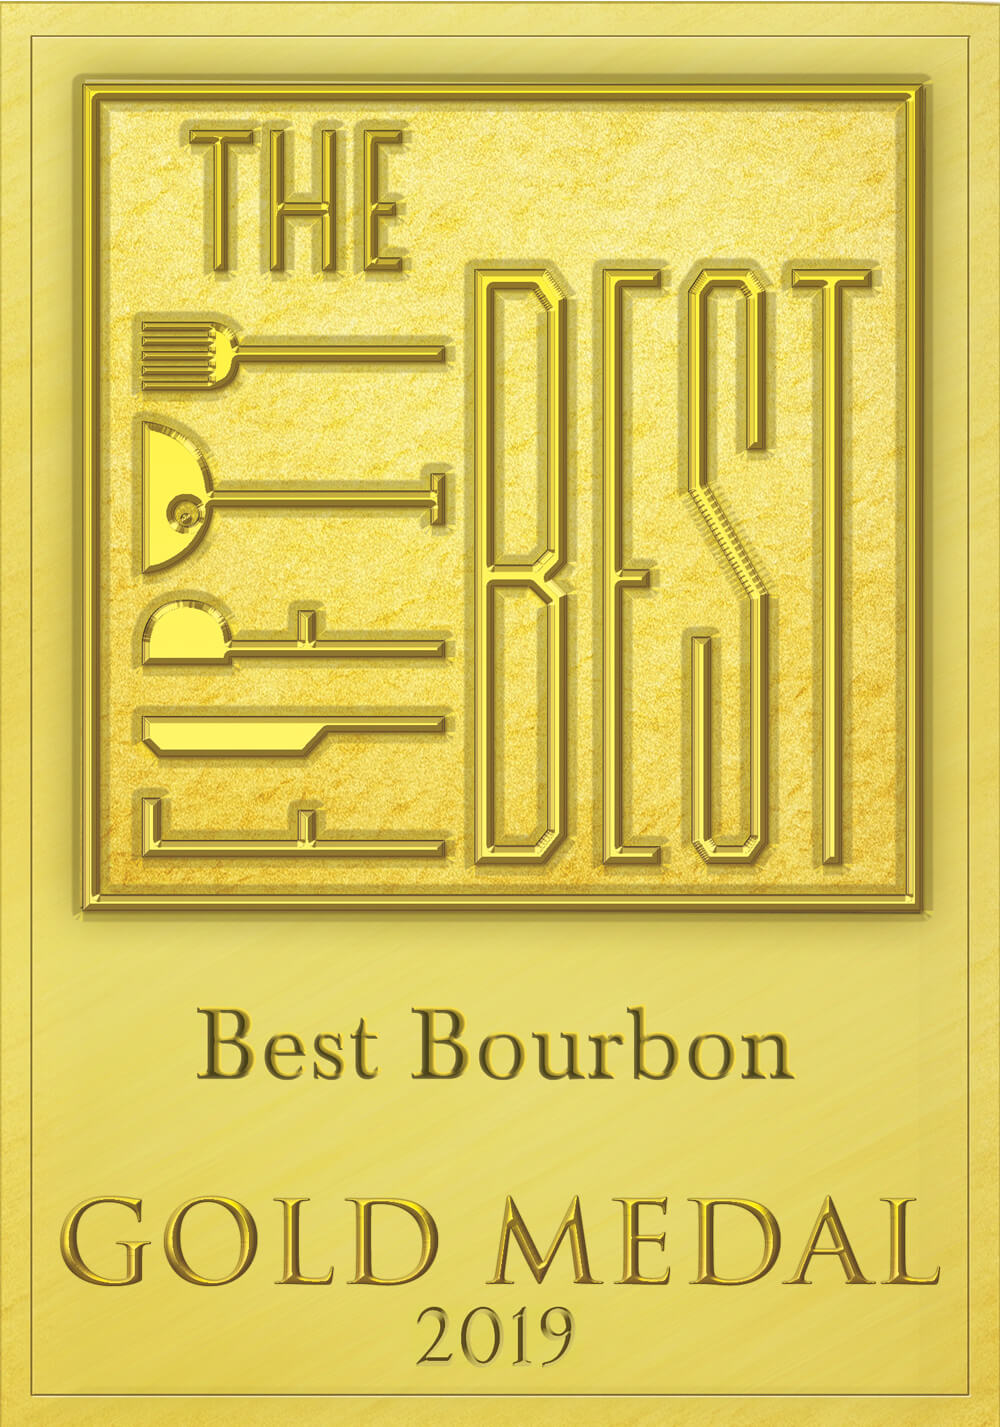 TheFiftyBest_GoldMedal_Bourbon_2019-(1)